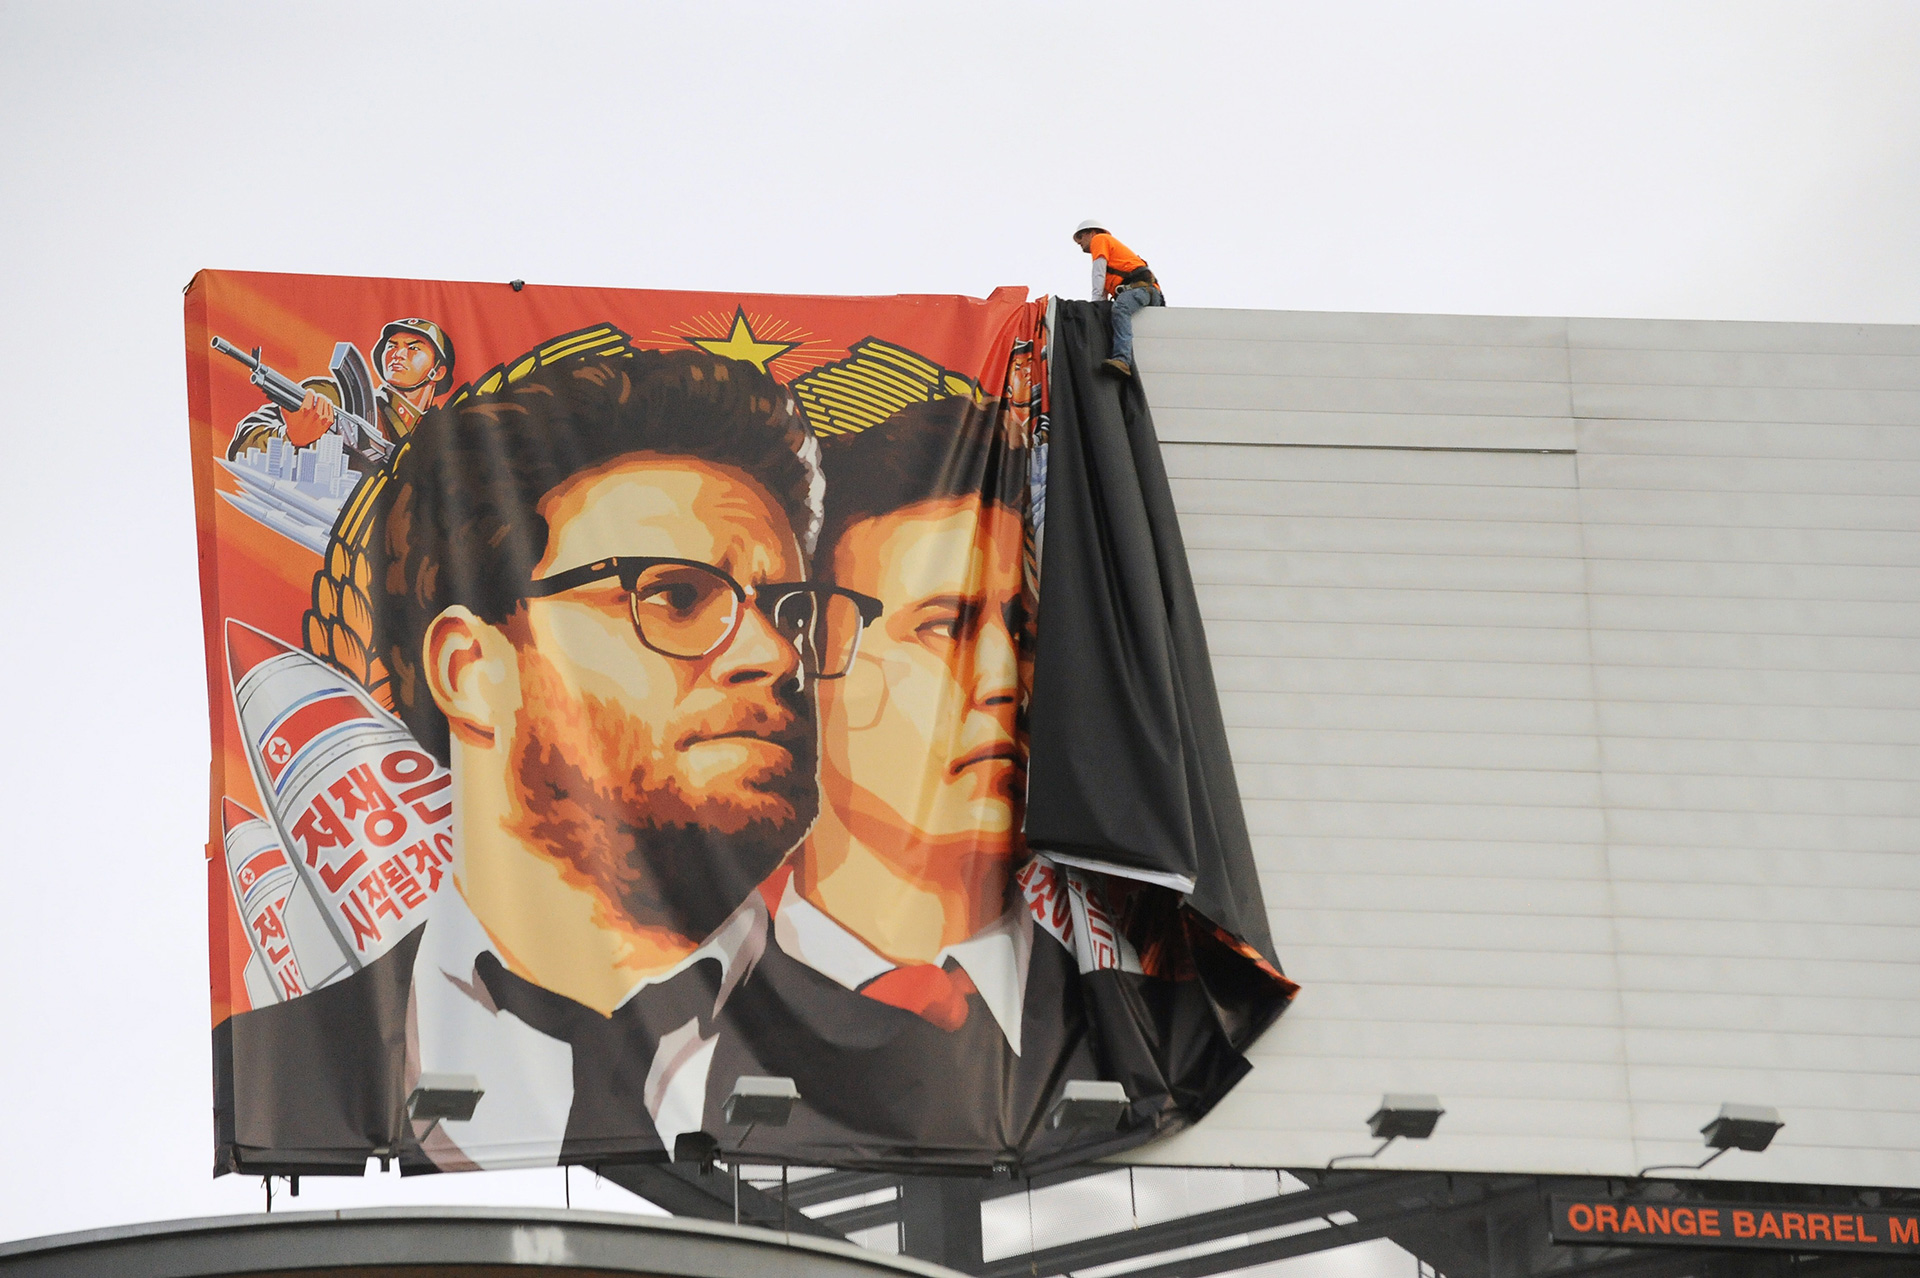 Sony 'disappointed' in Obama's criticism over The Interview